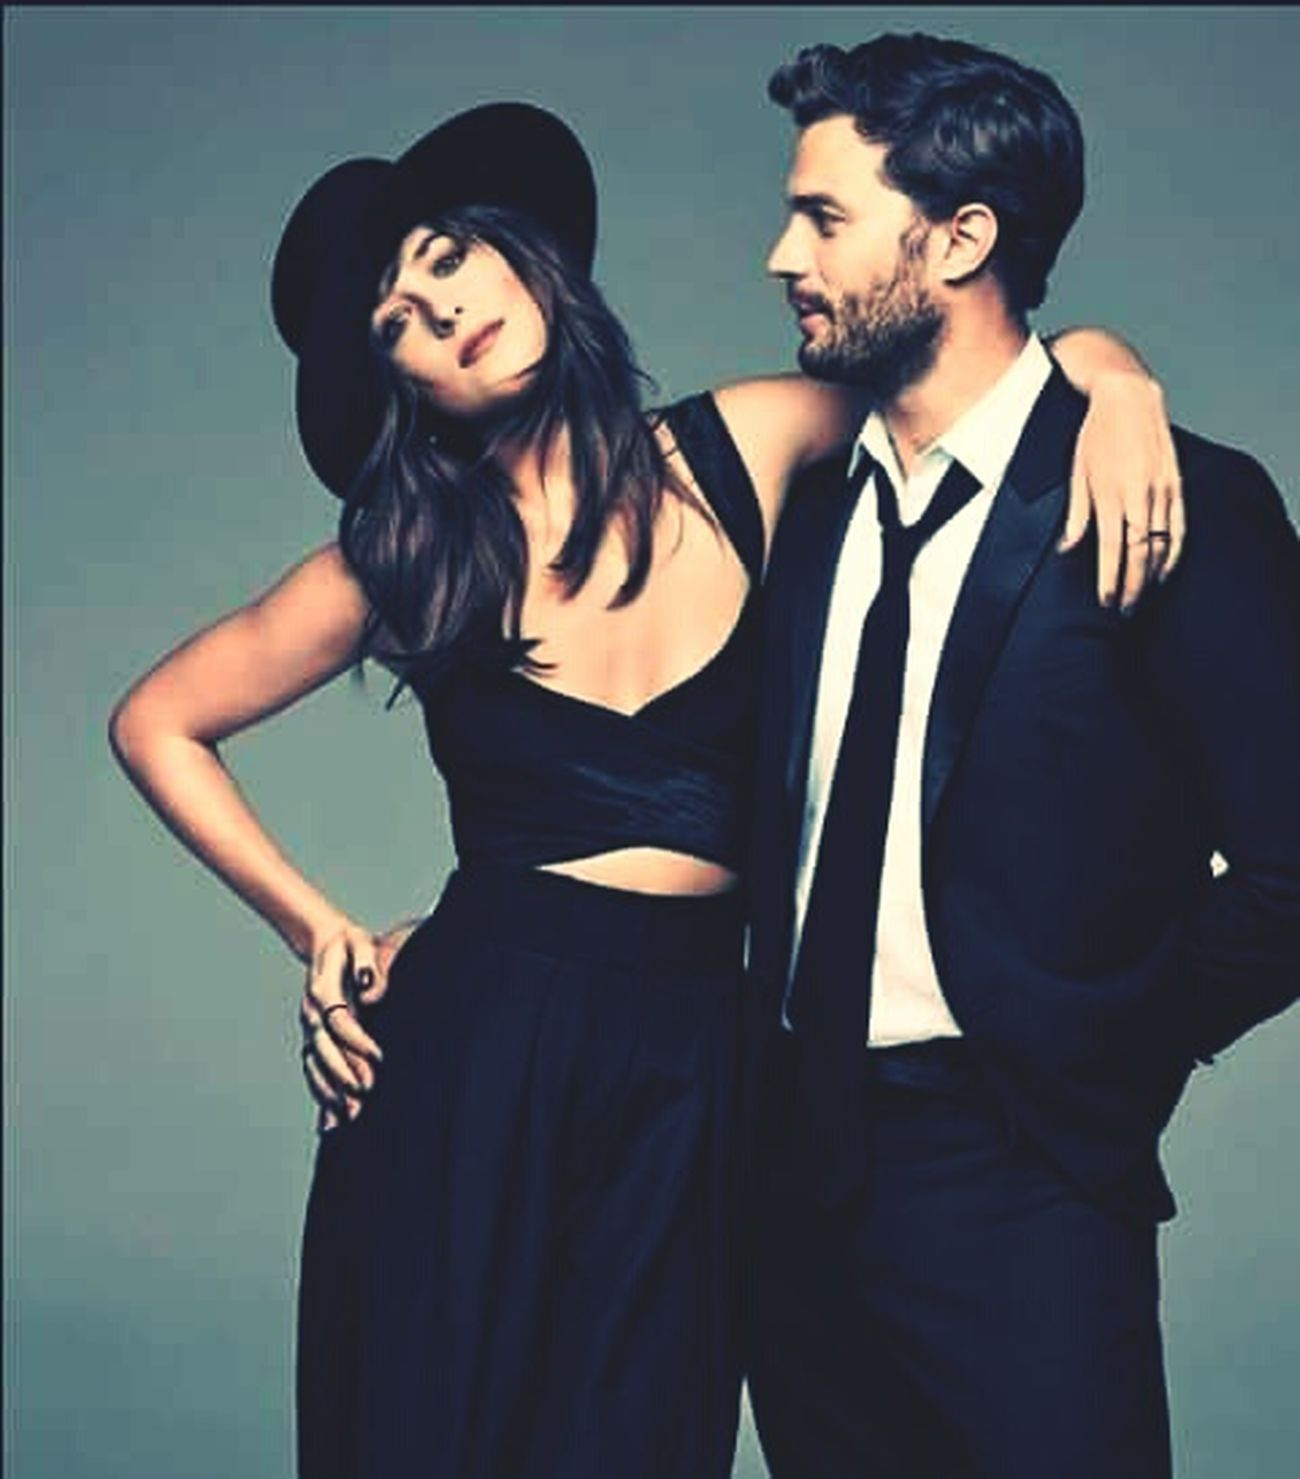 The PERFECTION Christian & Anastasia FiftyShadesOfGrey Beautiful Actors <3 They Are Perfect Dakota Johnson Jamie Dornan Photoshoot ♡ Lovely She Is Gorgeous ;) He Is Sexy